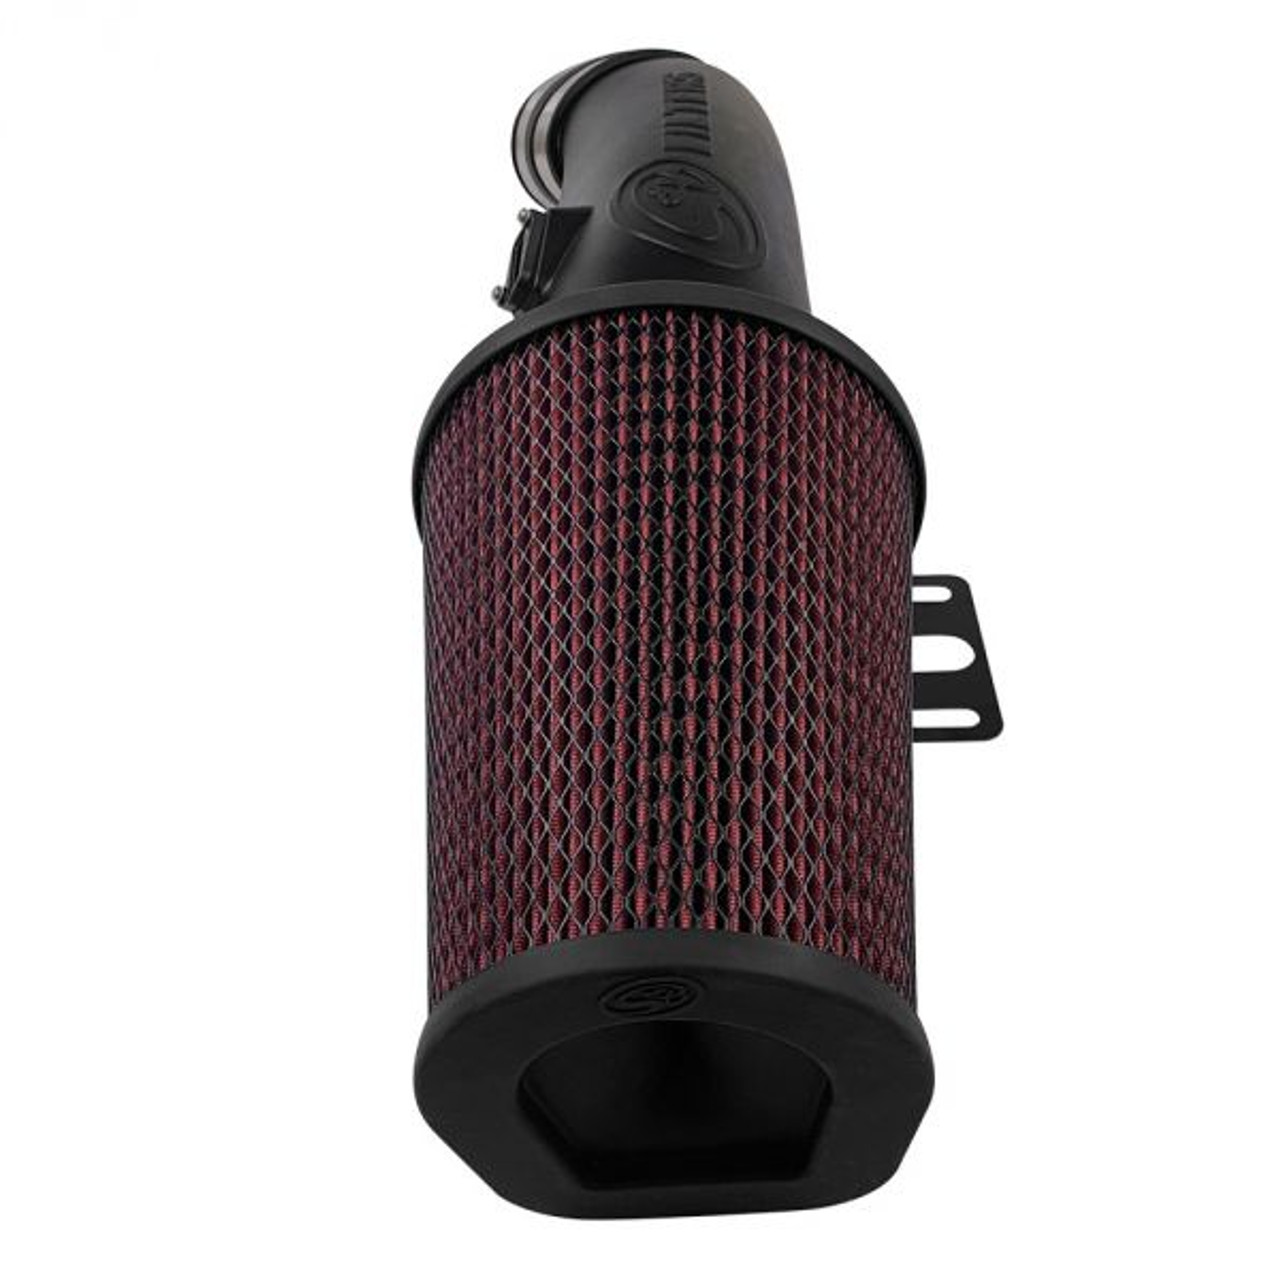 S&B Cold Air Intake 2017-2019 Ford 250 350 Powerstroke Diesel 6.7L Open Style 75-6001